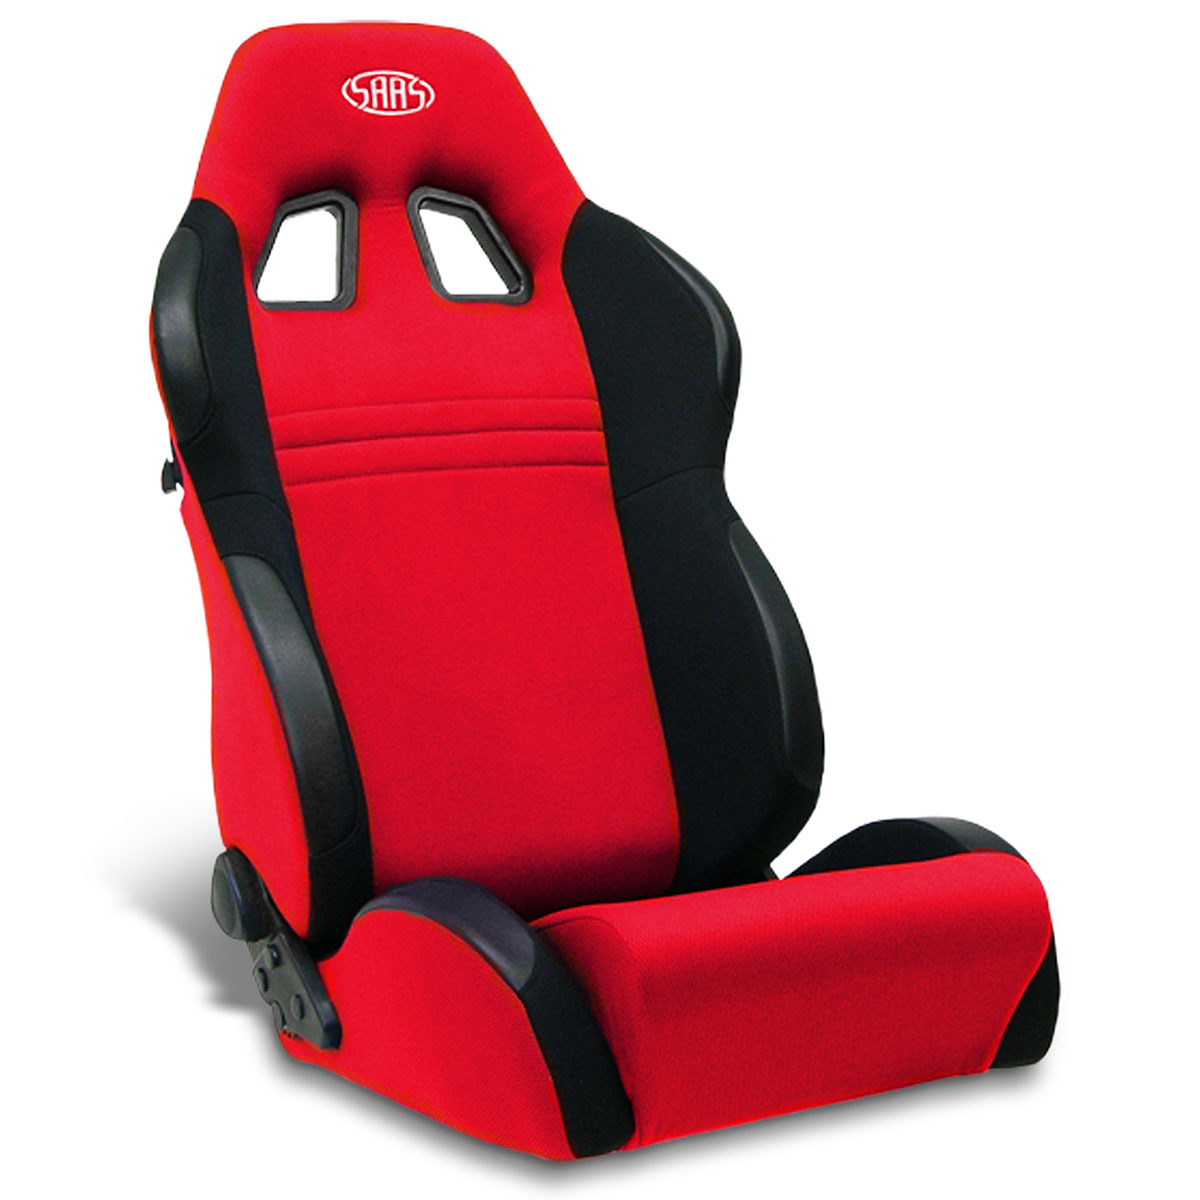 SAAS Vortek Seat Dual Recline Black/Red ADR Compliant